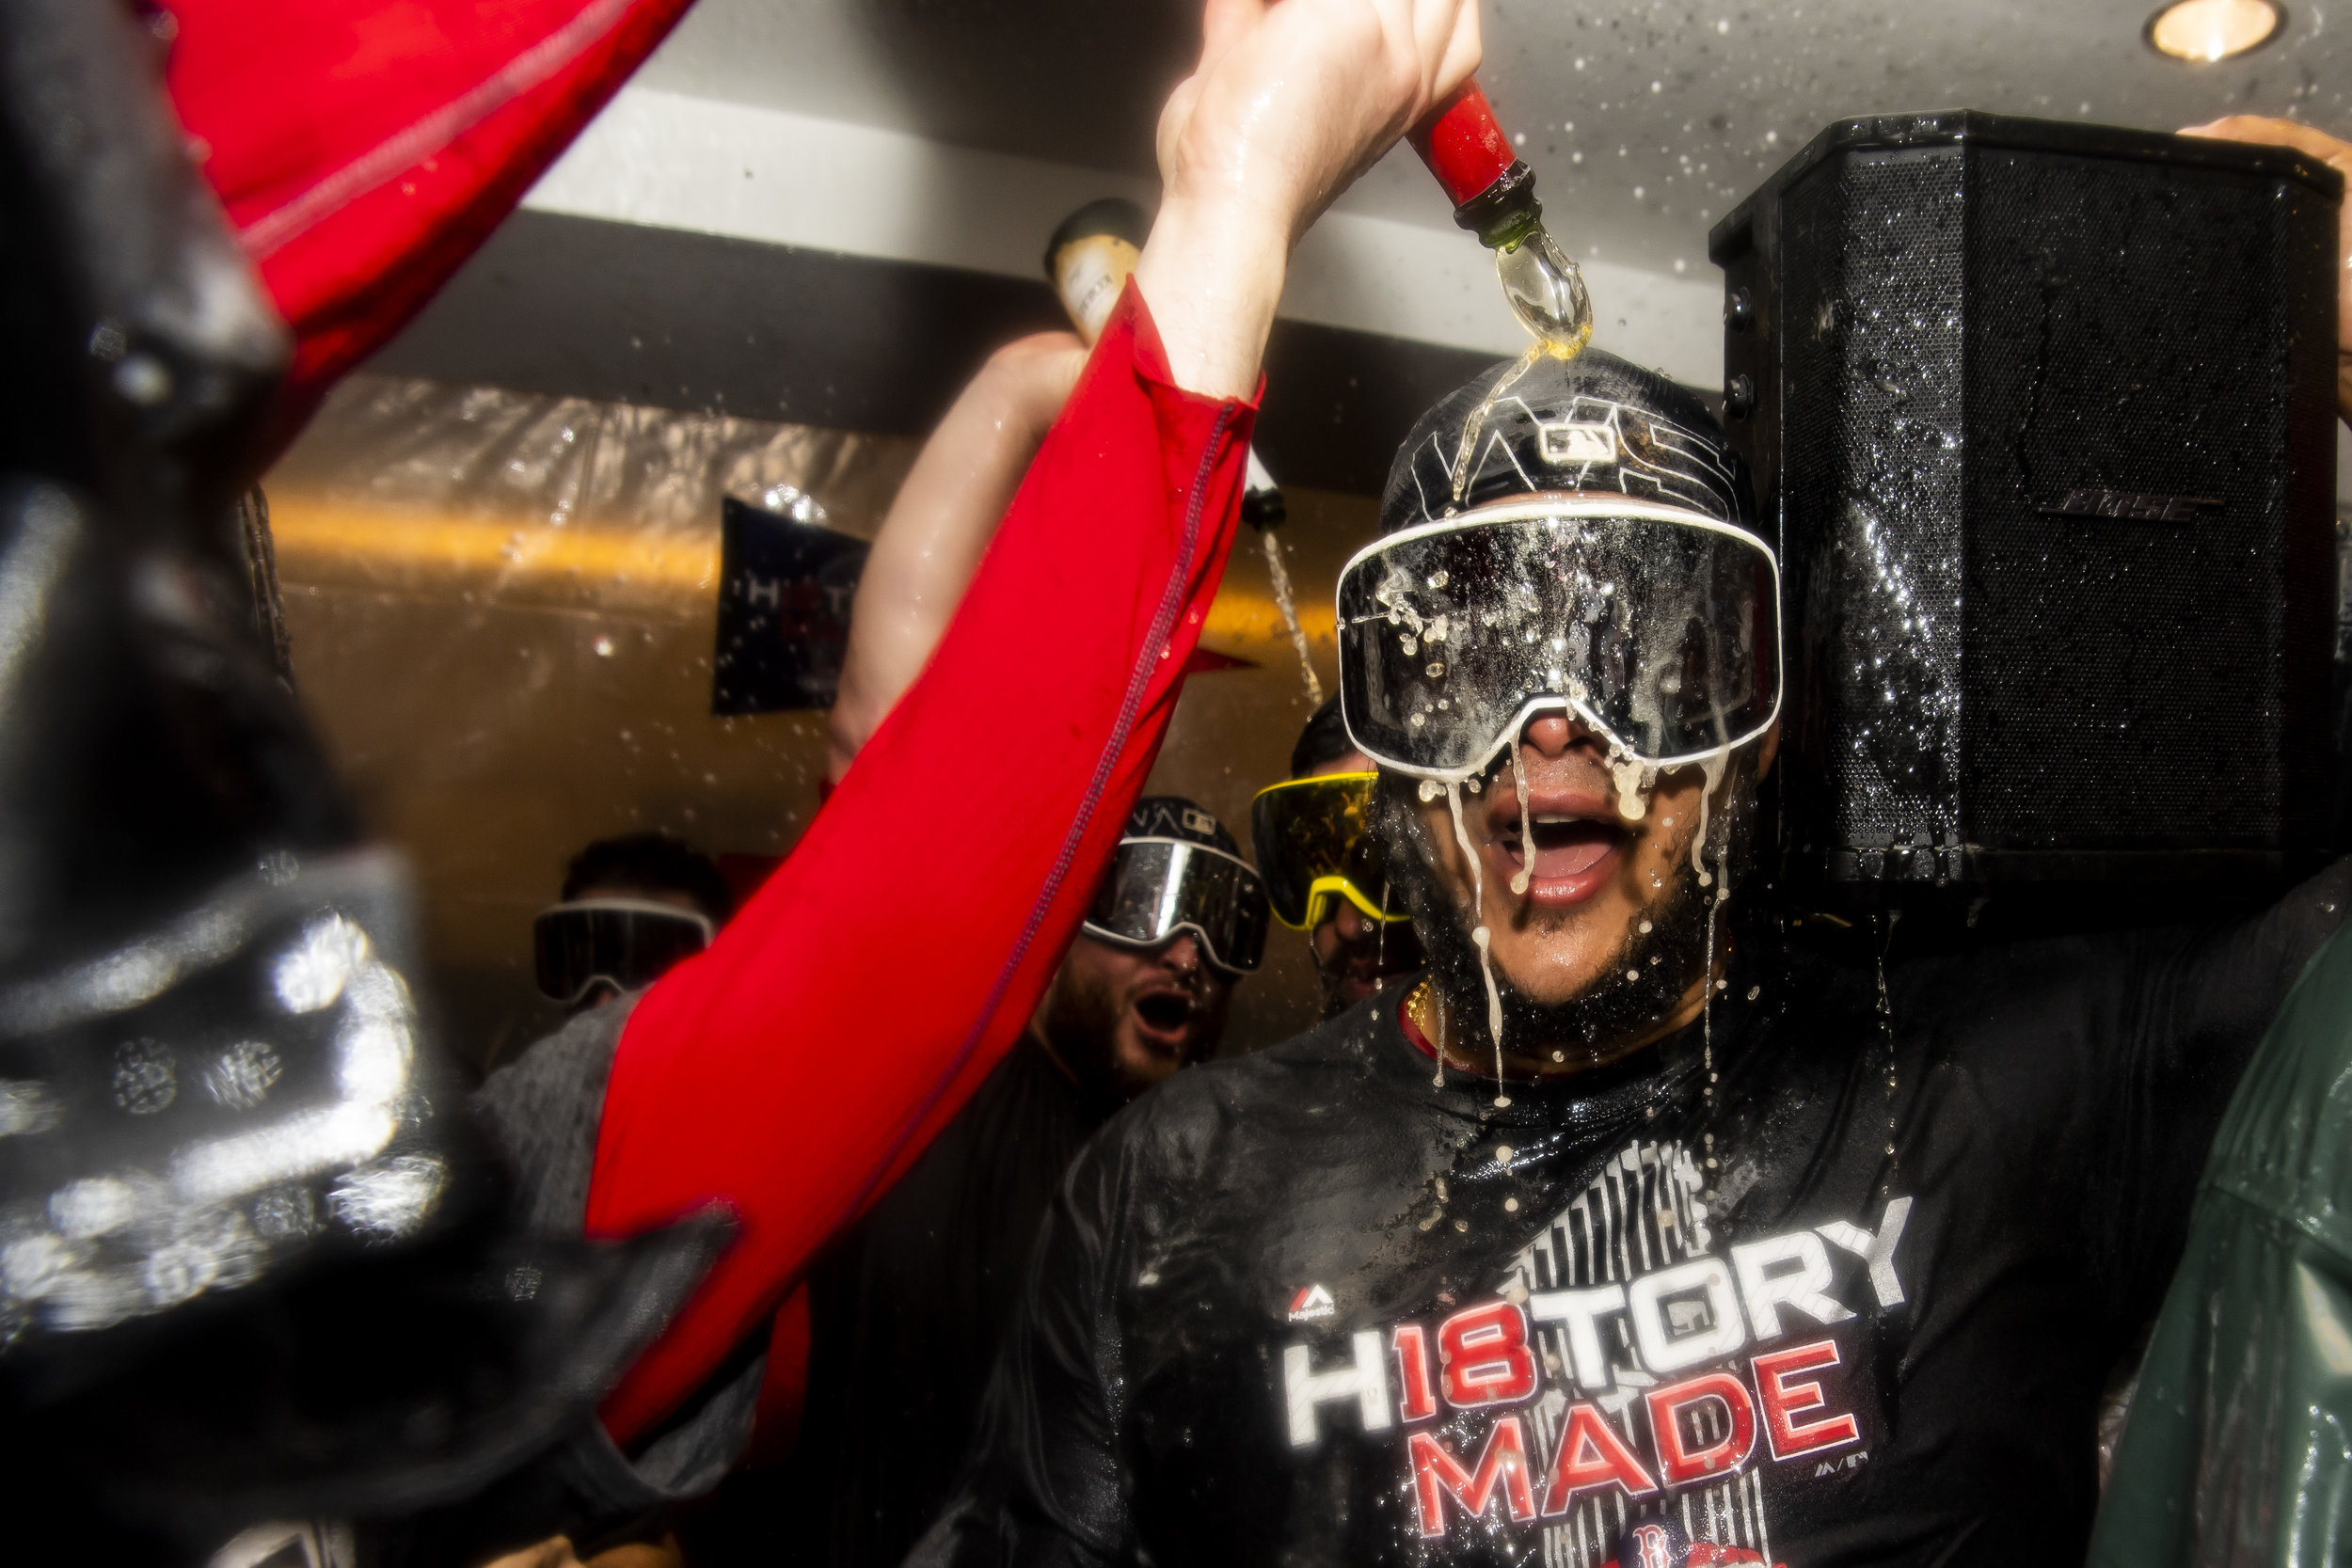 October 28, 2018, Los Angeles, Ca: Boston Red Sox pitcher Eduardo Rodriguez is covered in champagne after the Boston Red Sox defeated the Los Angeles Dodgers in Game 5 to win the World Series at Dodger Stadium in Los Angeles, California on Saturday, October 28, 2018. (Photo by Matthew Thomas/Boston Red Sox)